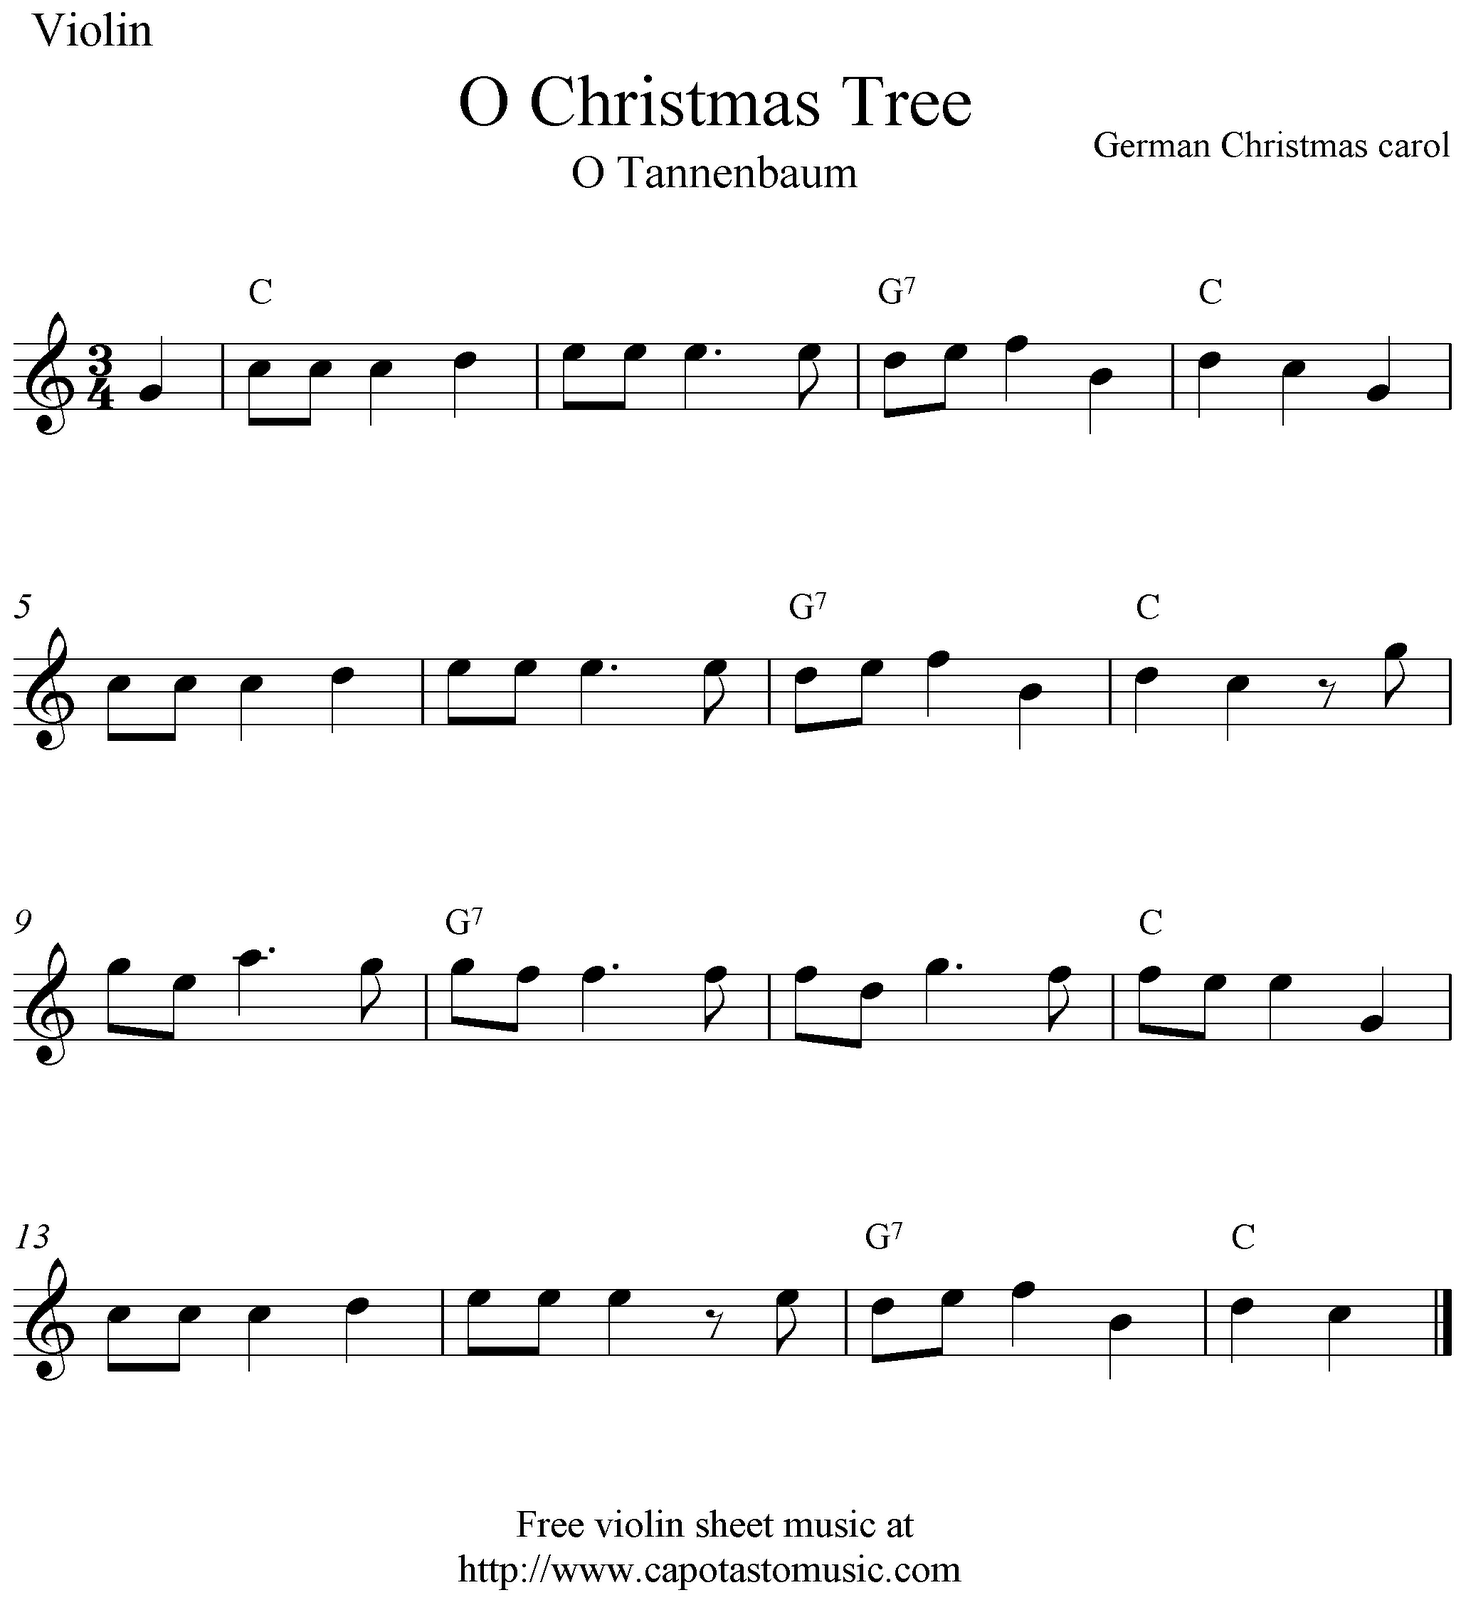 Free Sheet Music Scores: O Christmas Tree (O Tannenbaum), free ...